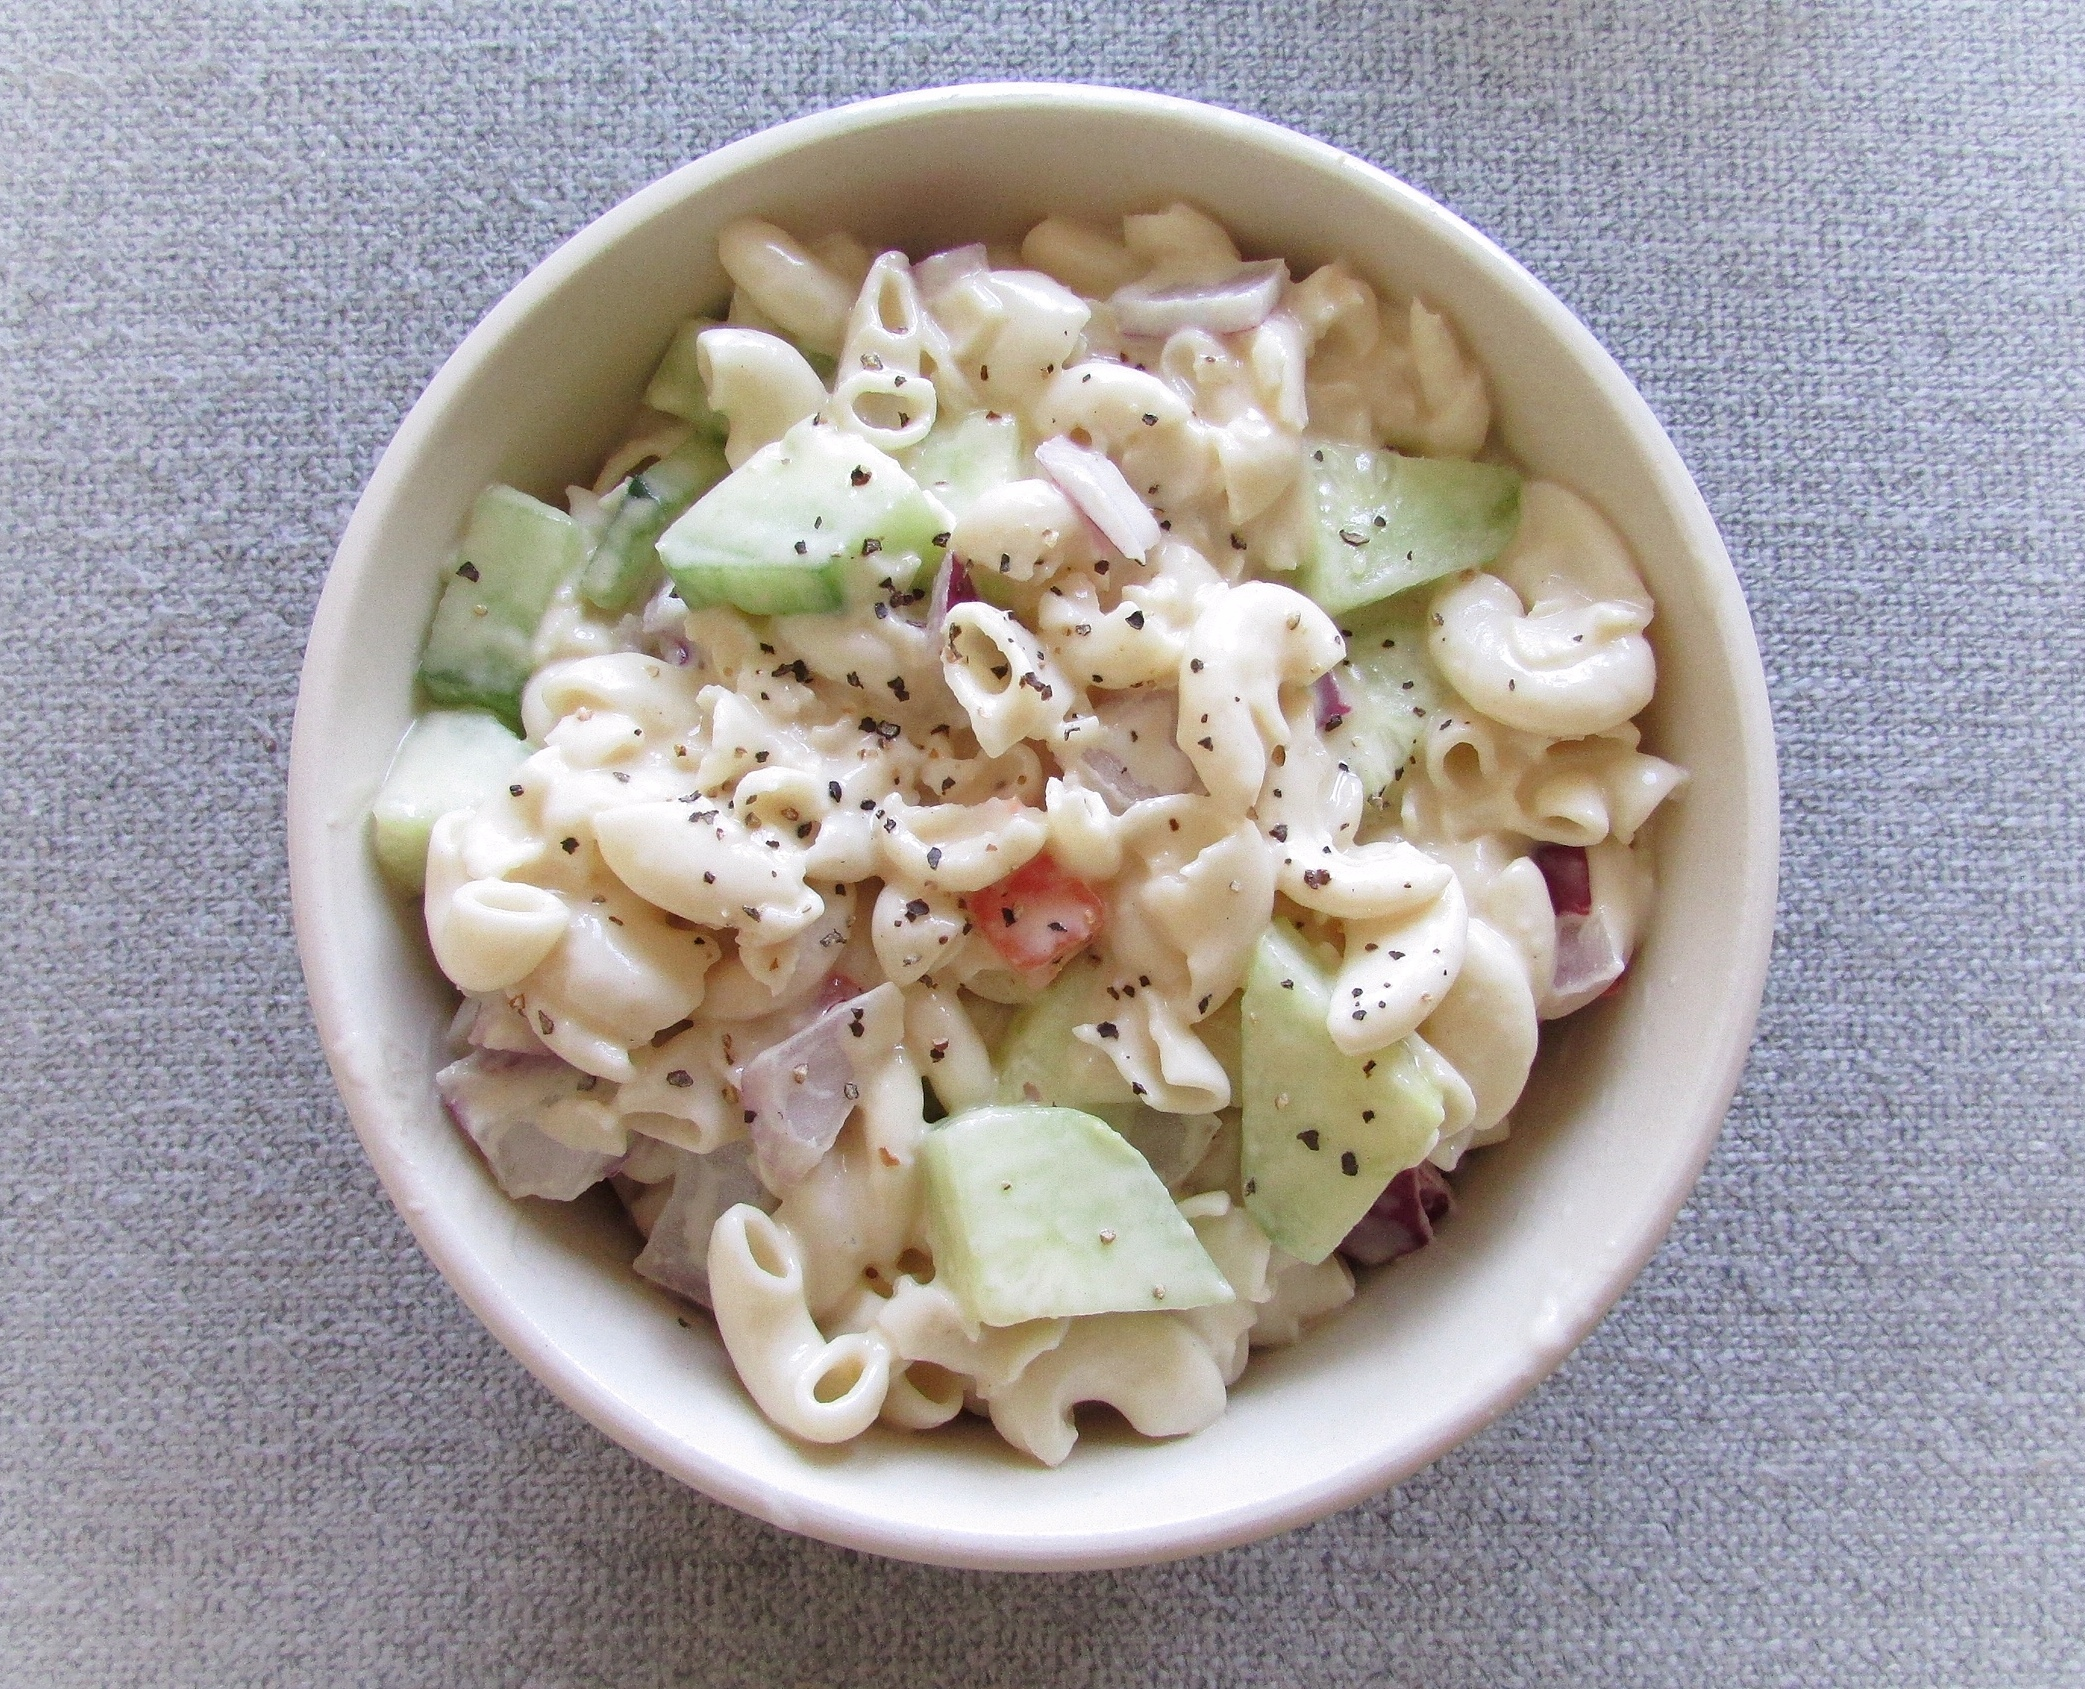 keto low carb pasta salad recipe